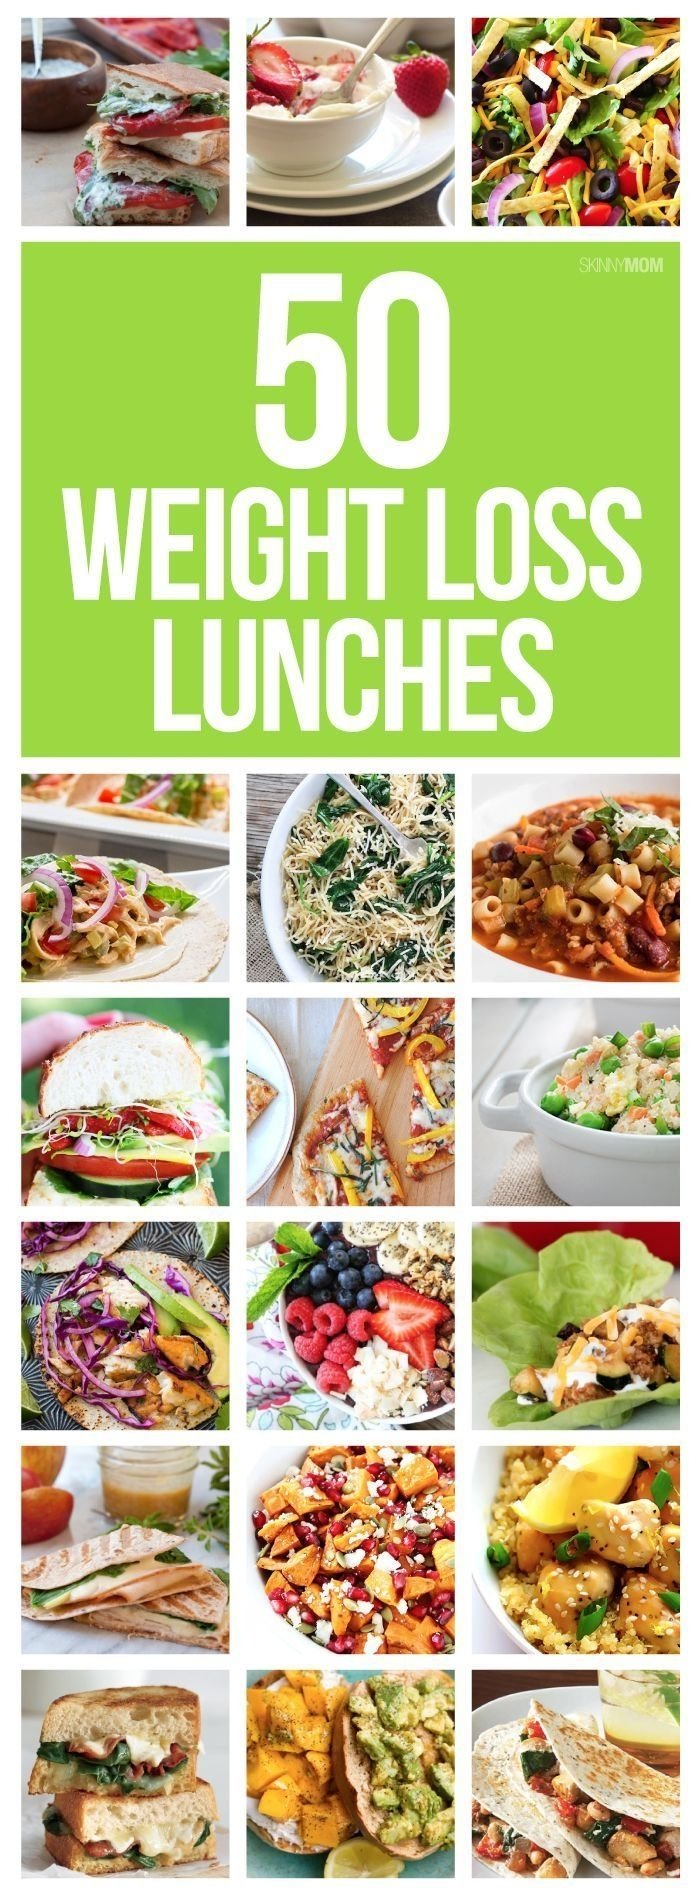 378 best lunch recipes images on pinterest | sandwiches, savory